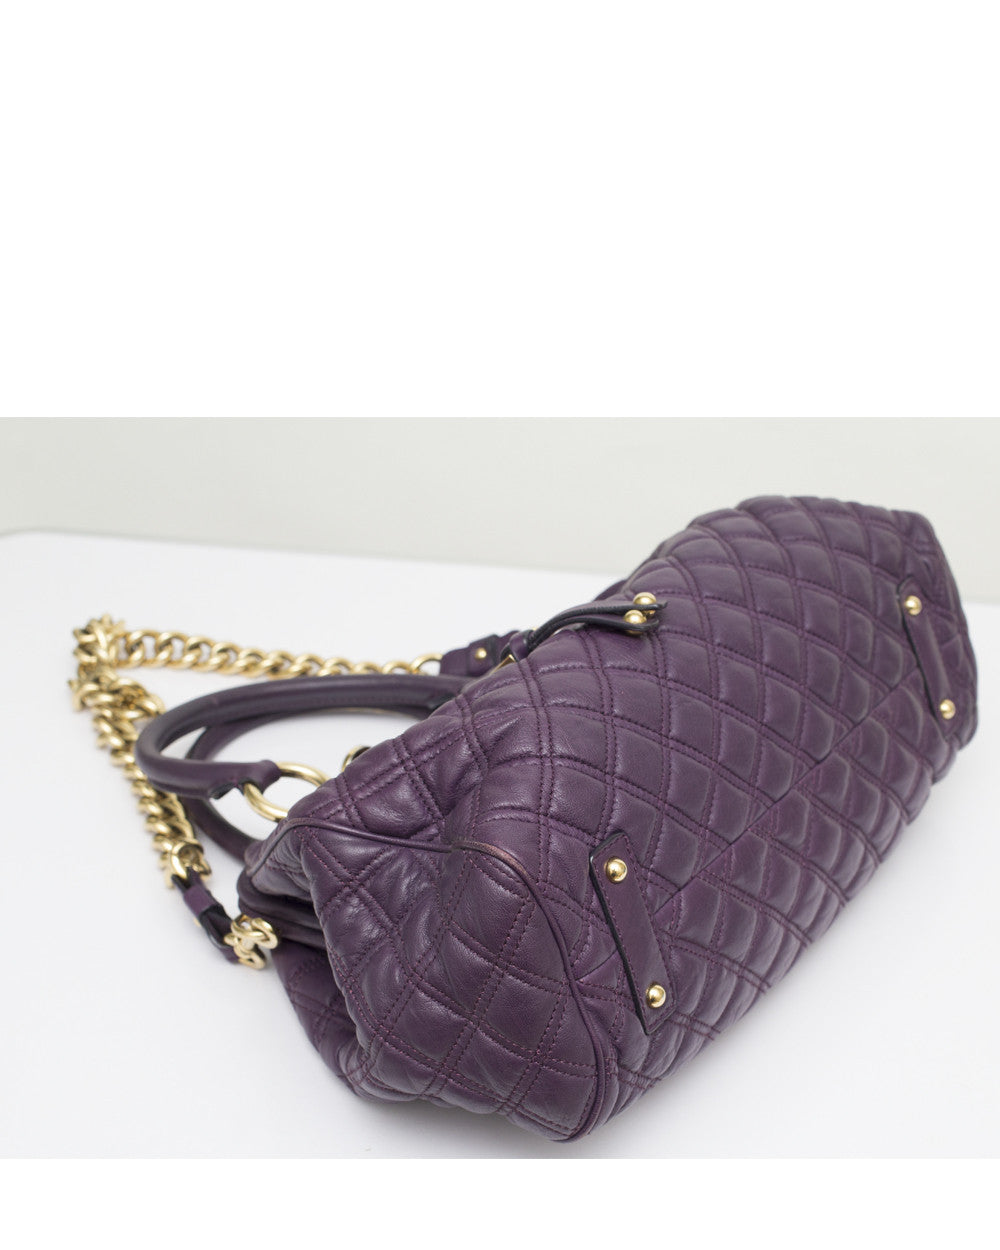 Purple Stam Bag